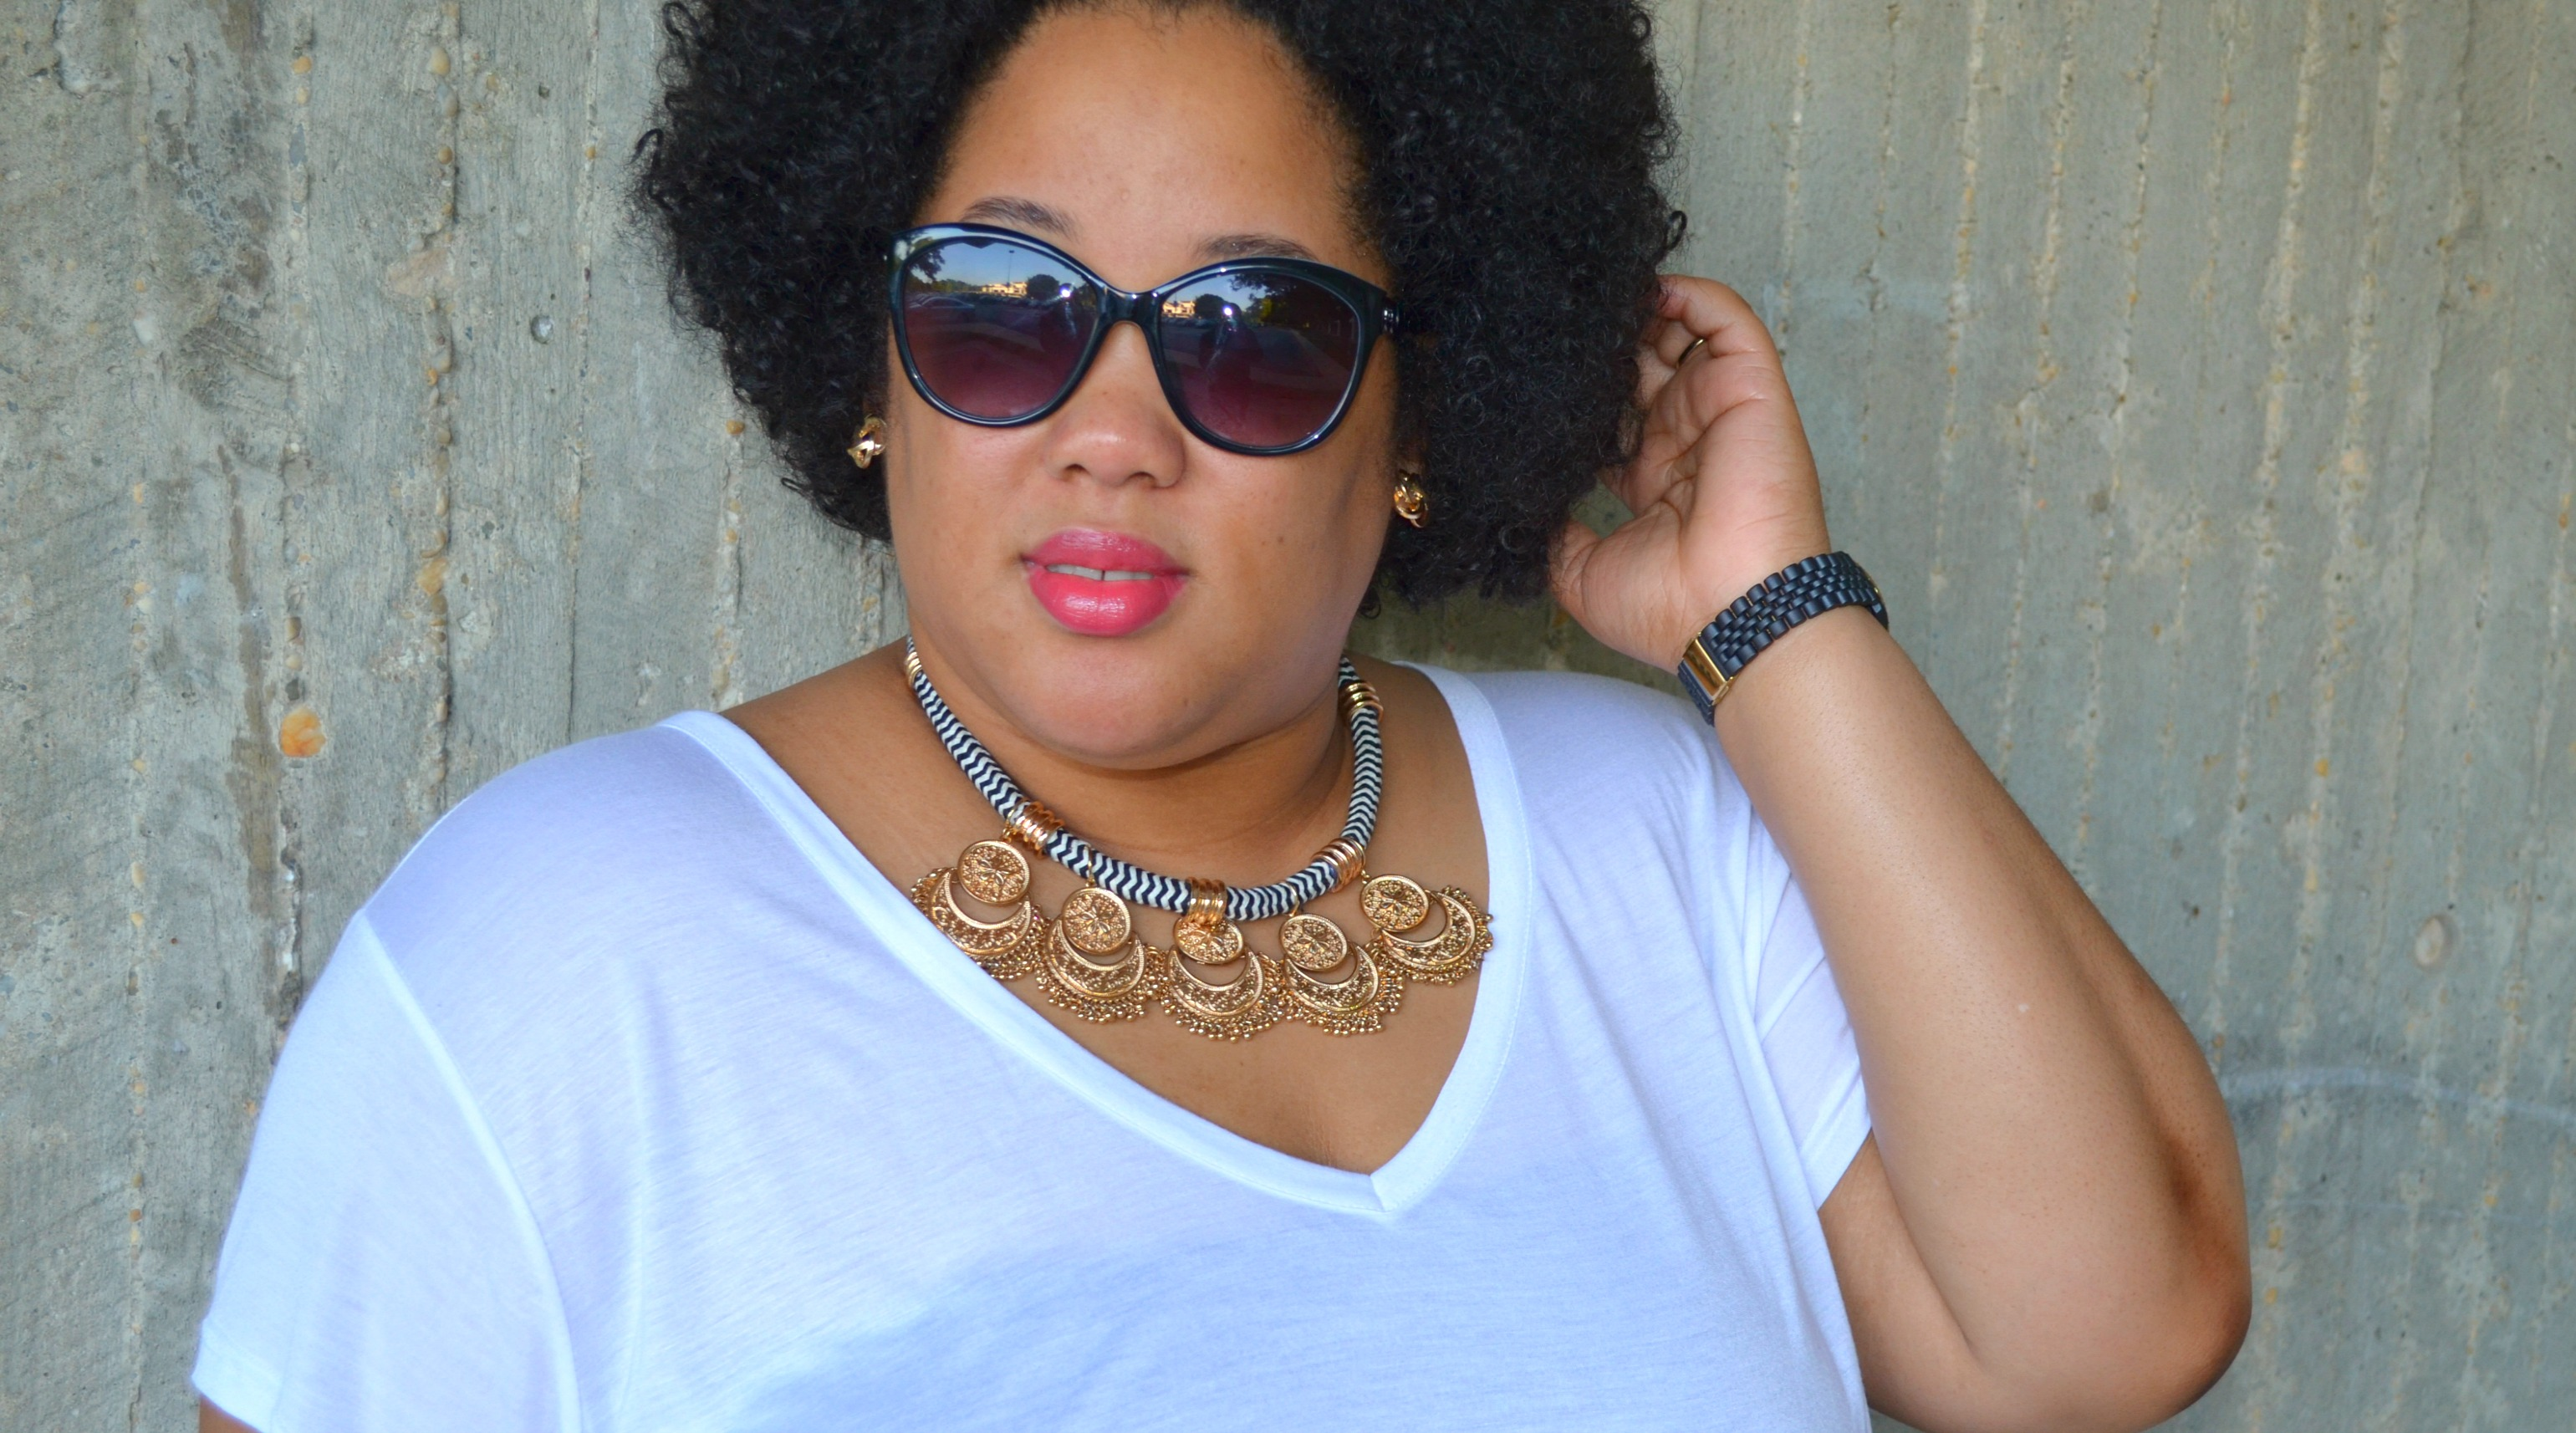 Statement Necklace and Sunnies